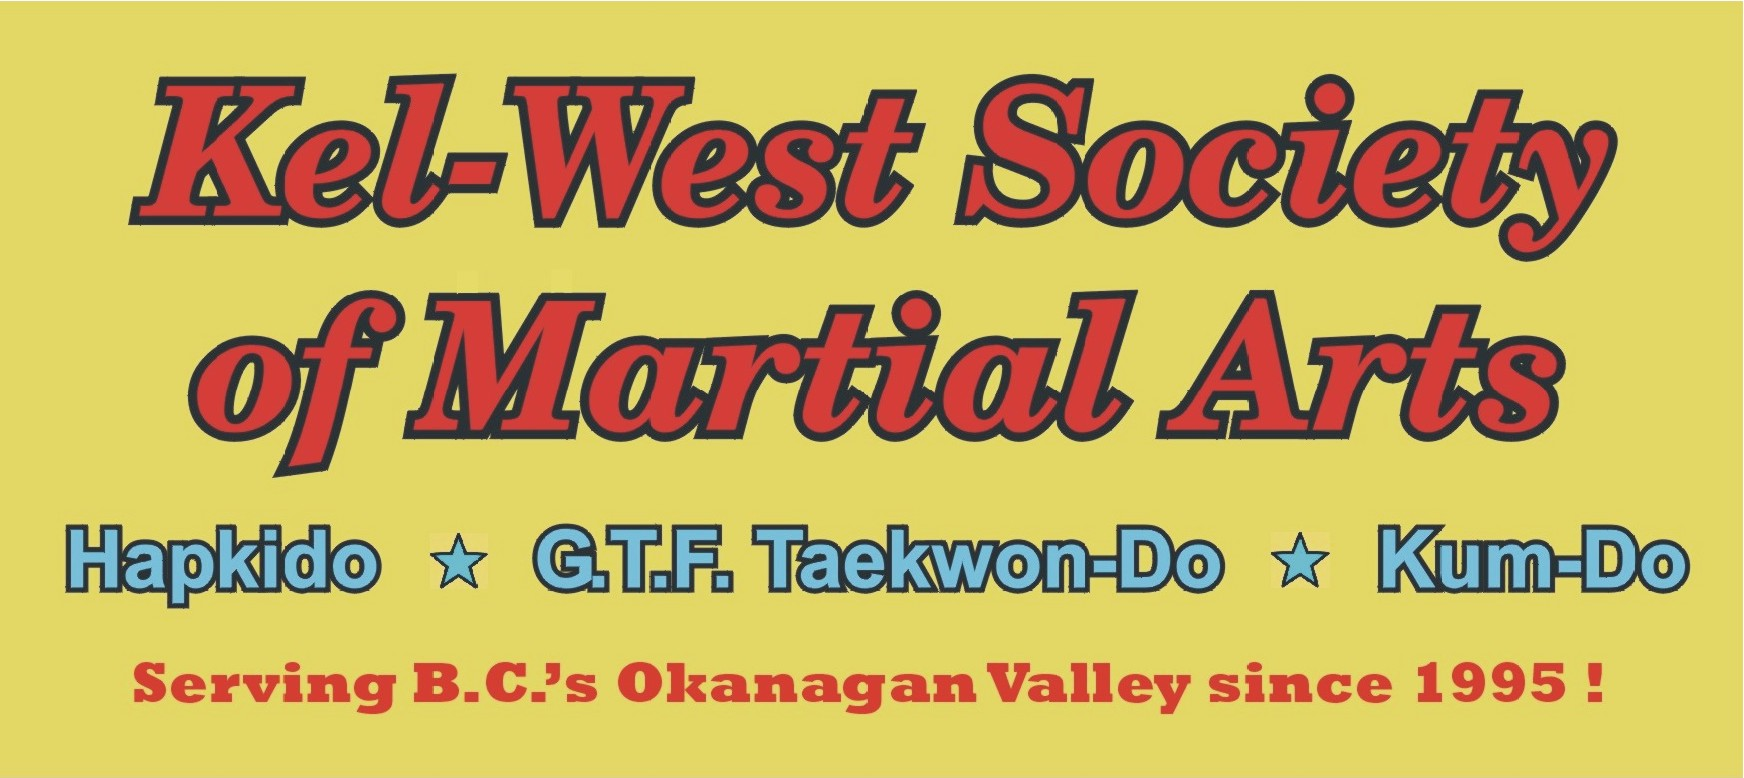 Welcome to the 2018 KEL-WEST SOCIETY OF MARTIAL ARTS web-site, West Kelowna, British Columbia, Canada!